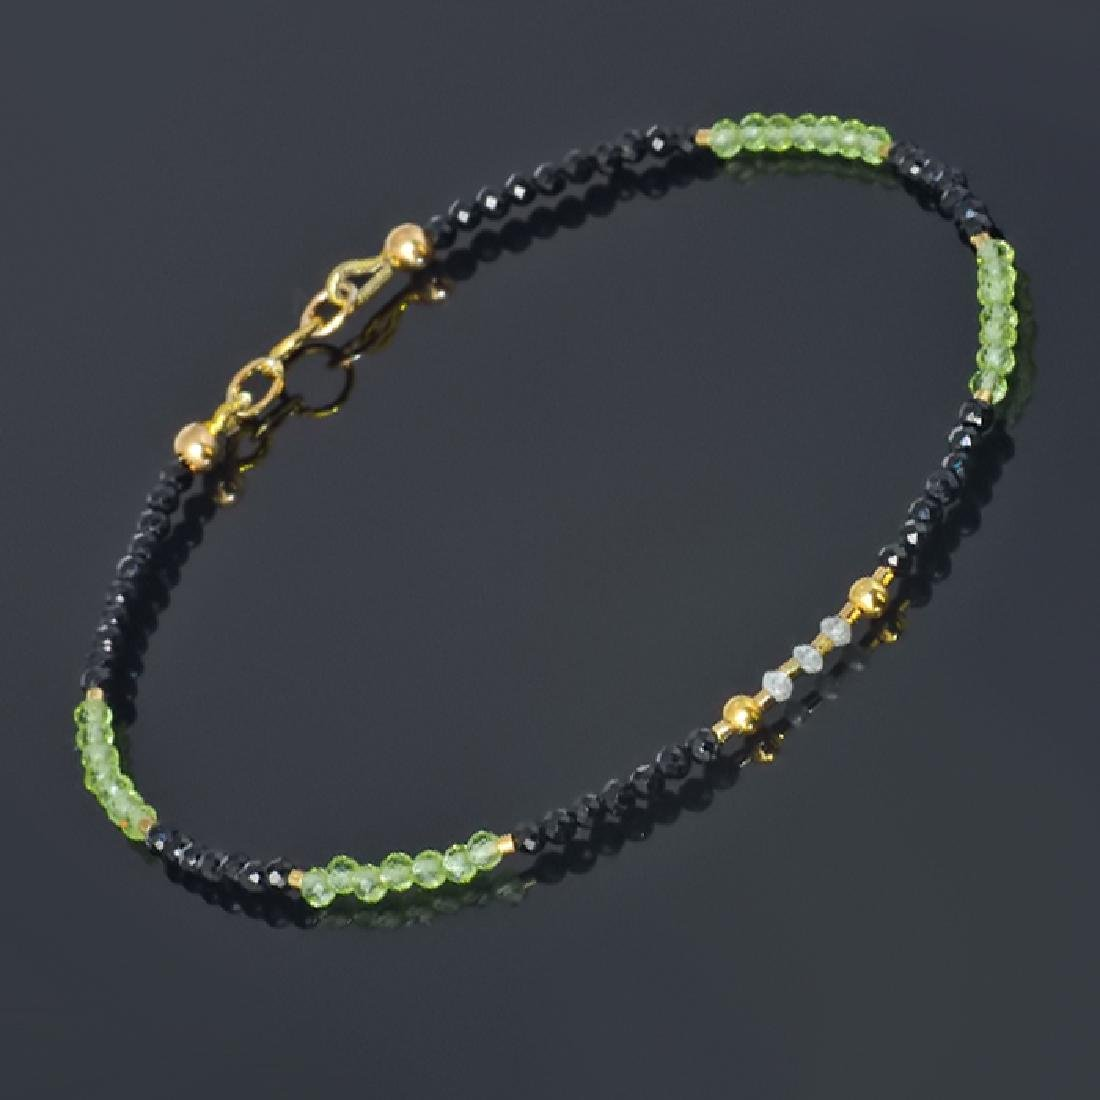 Spinel and Peridot bracelet with Diamonds 0.2 carat - 4